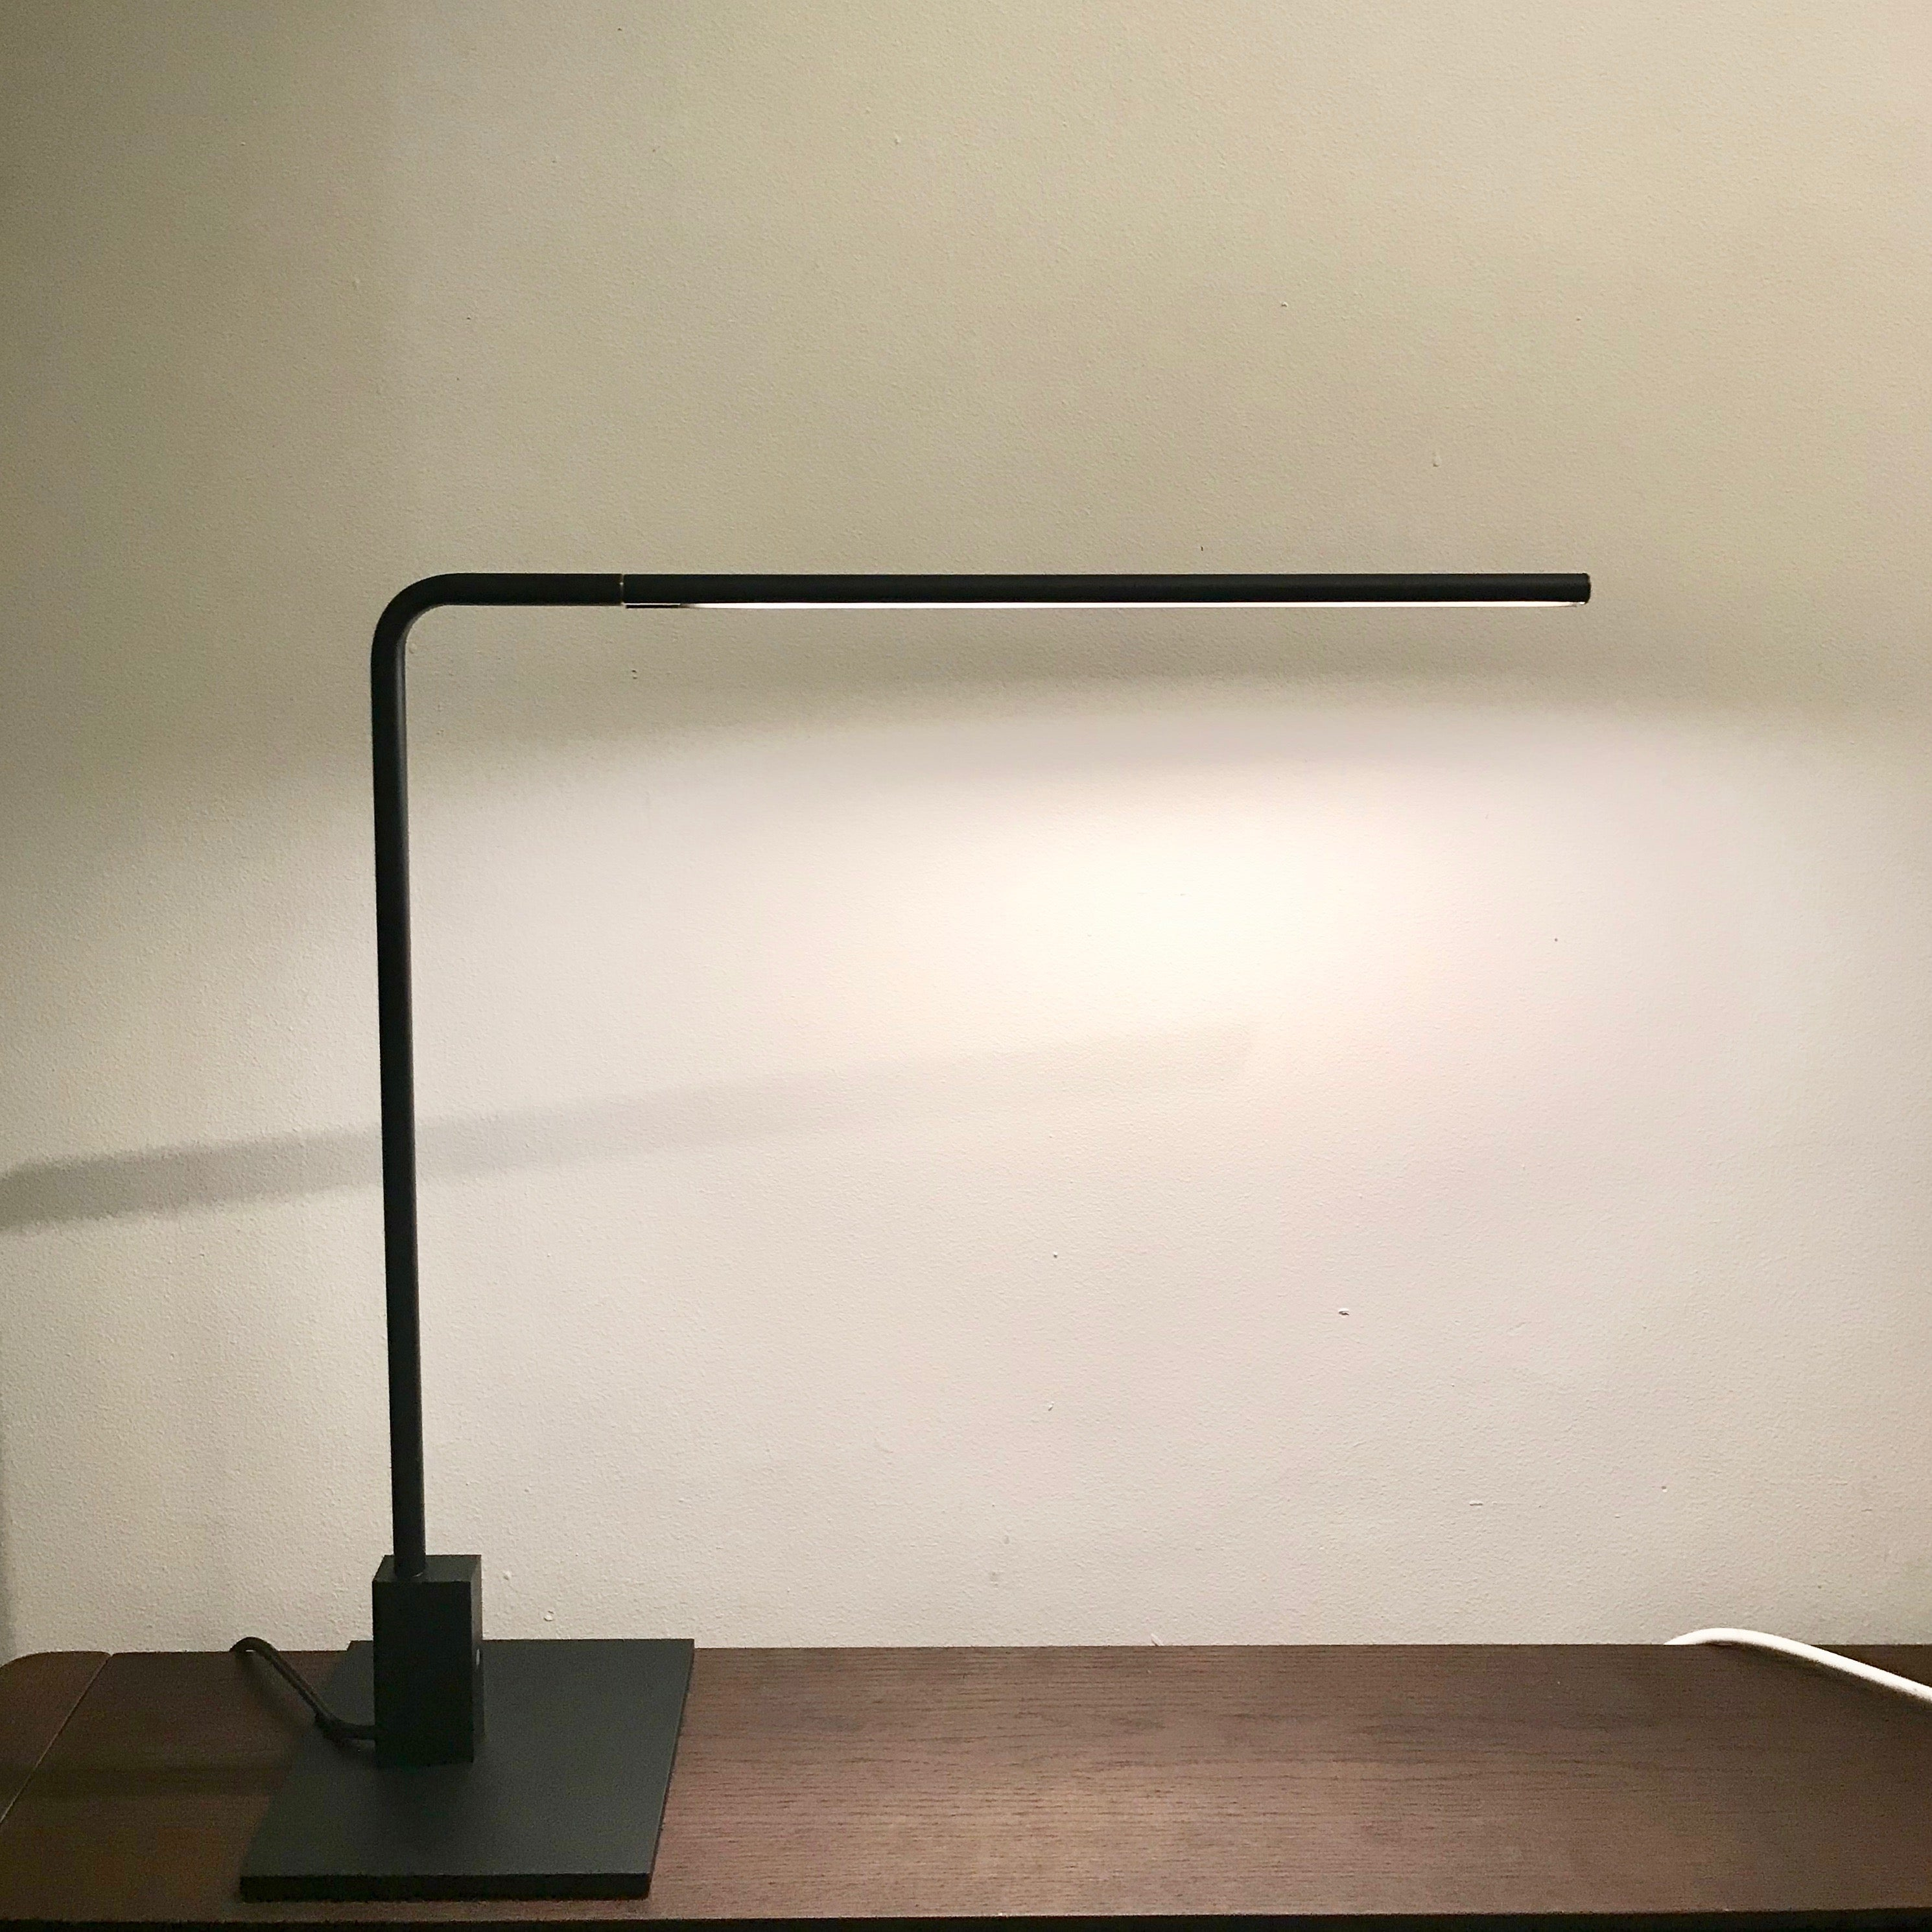 La Villa Lamp by Allessandro Fantetti for Viabizzuno